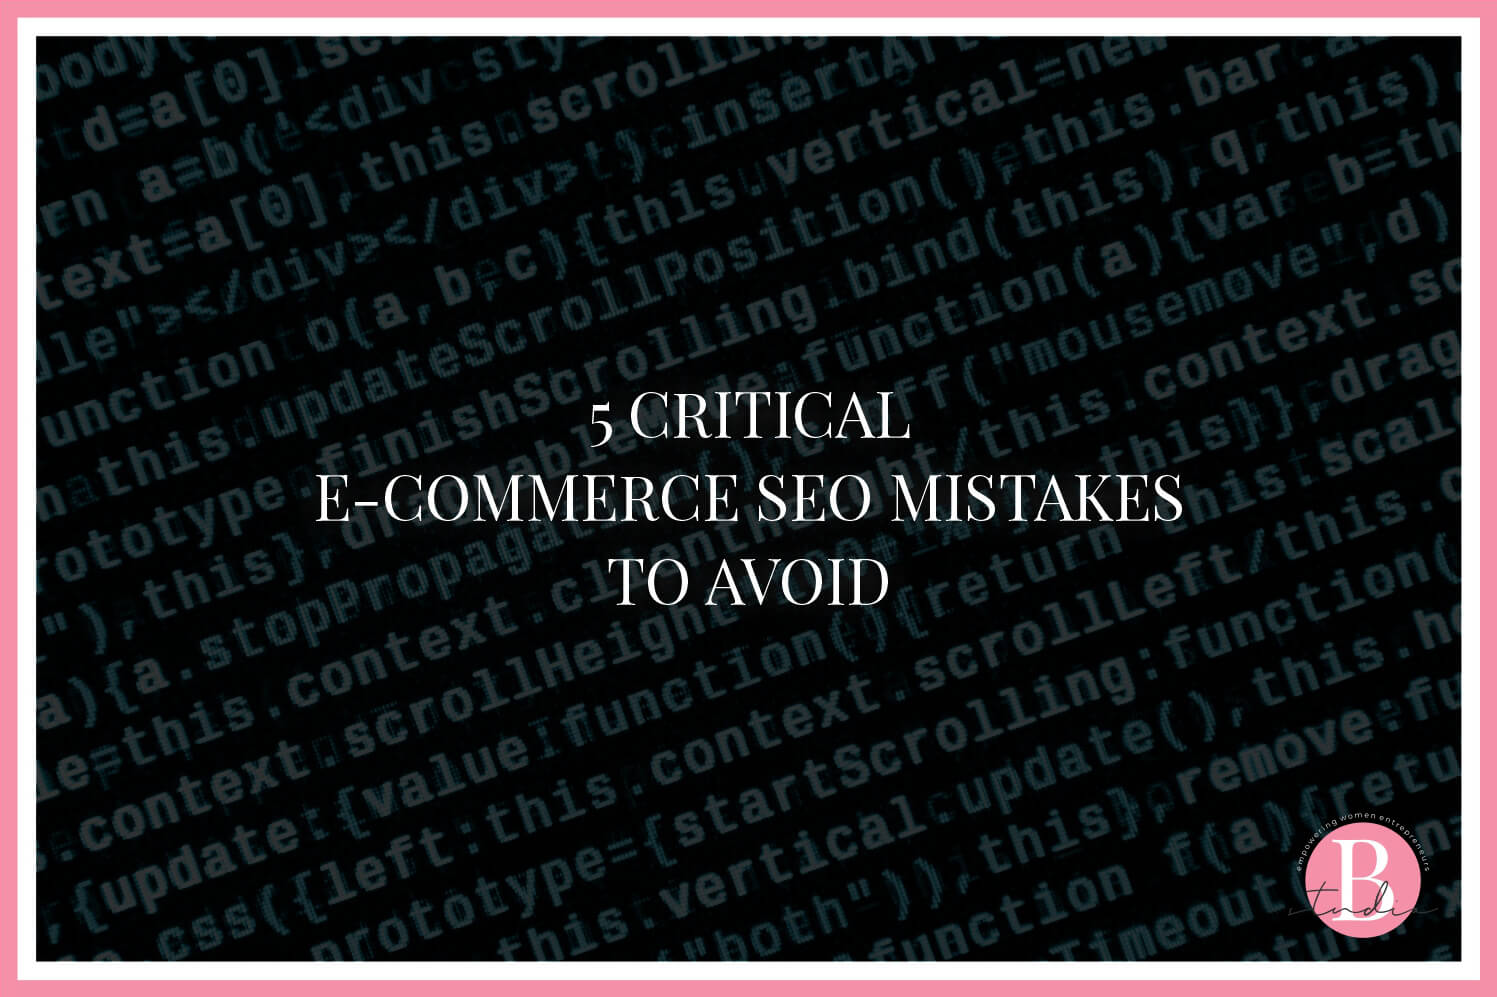 5 Critical E-Commerce SEO Mistakes To Avoid img